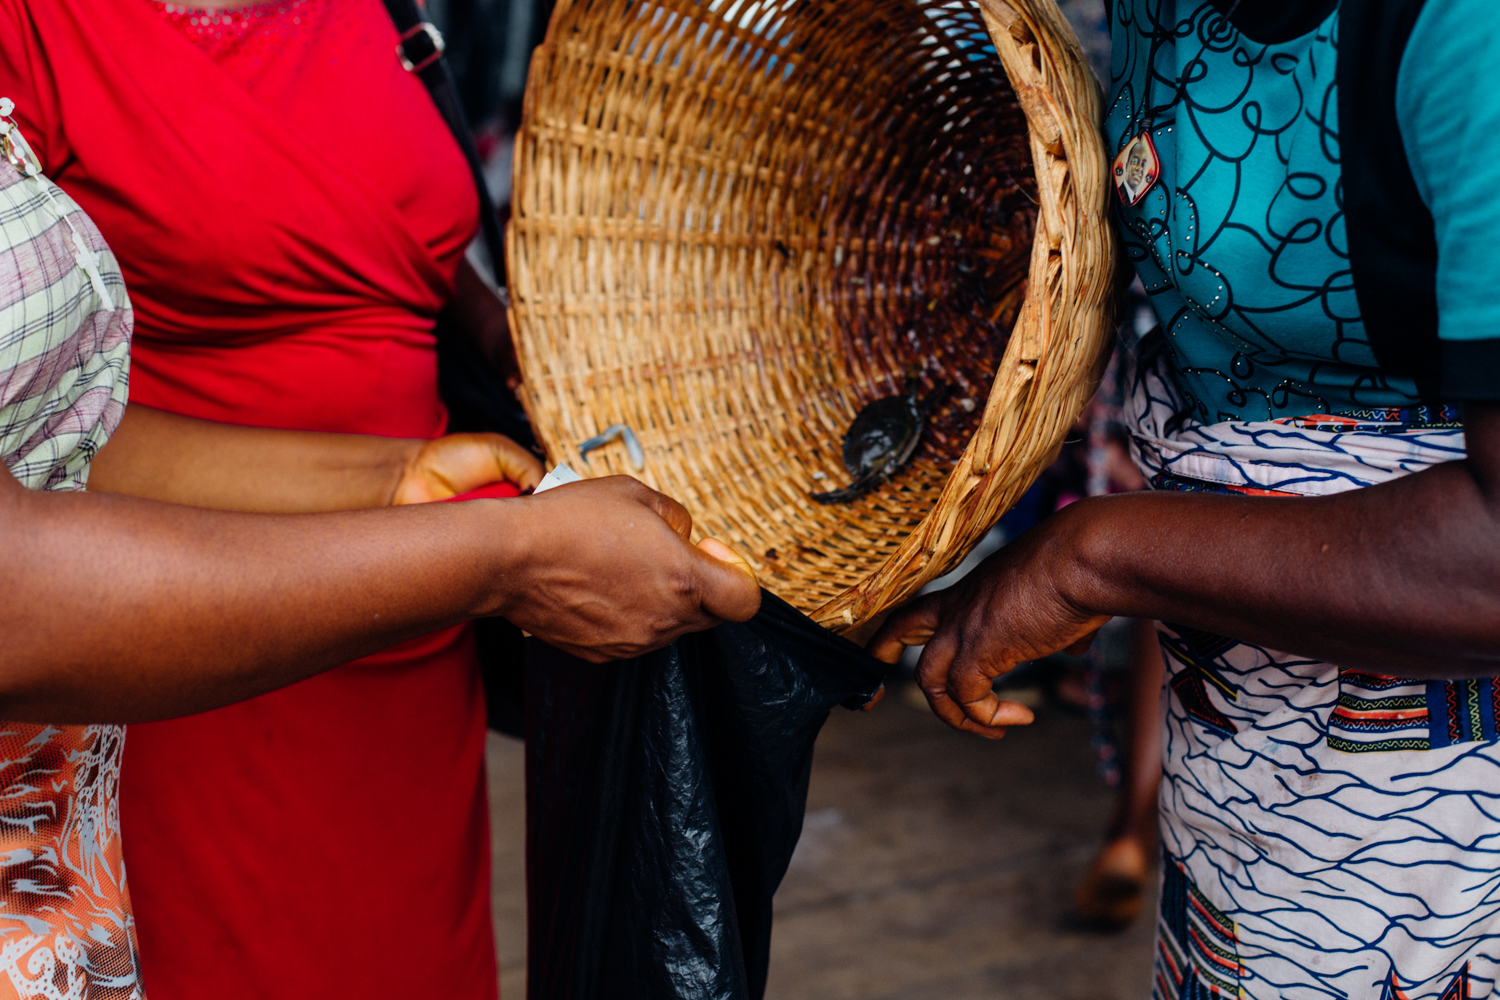 Crabs being dropped into a bag at the floating market in Koko